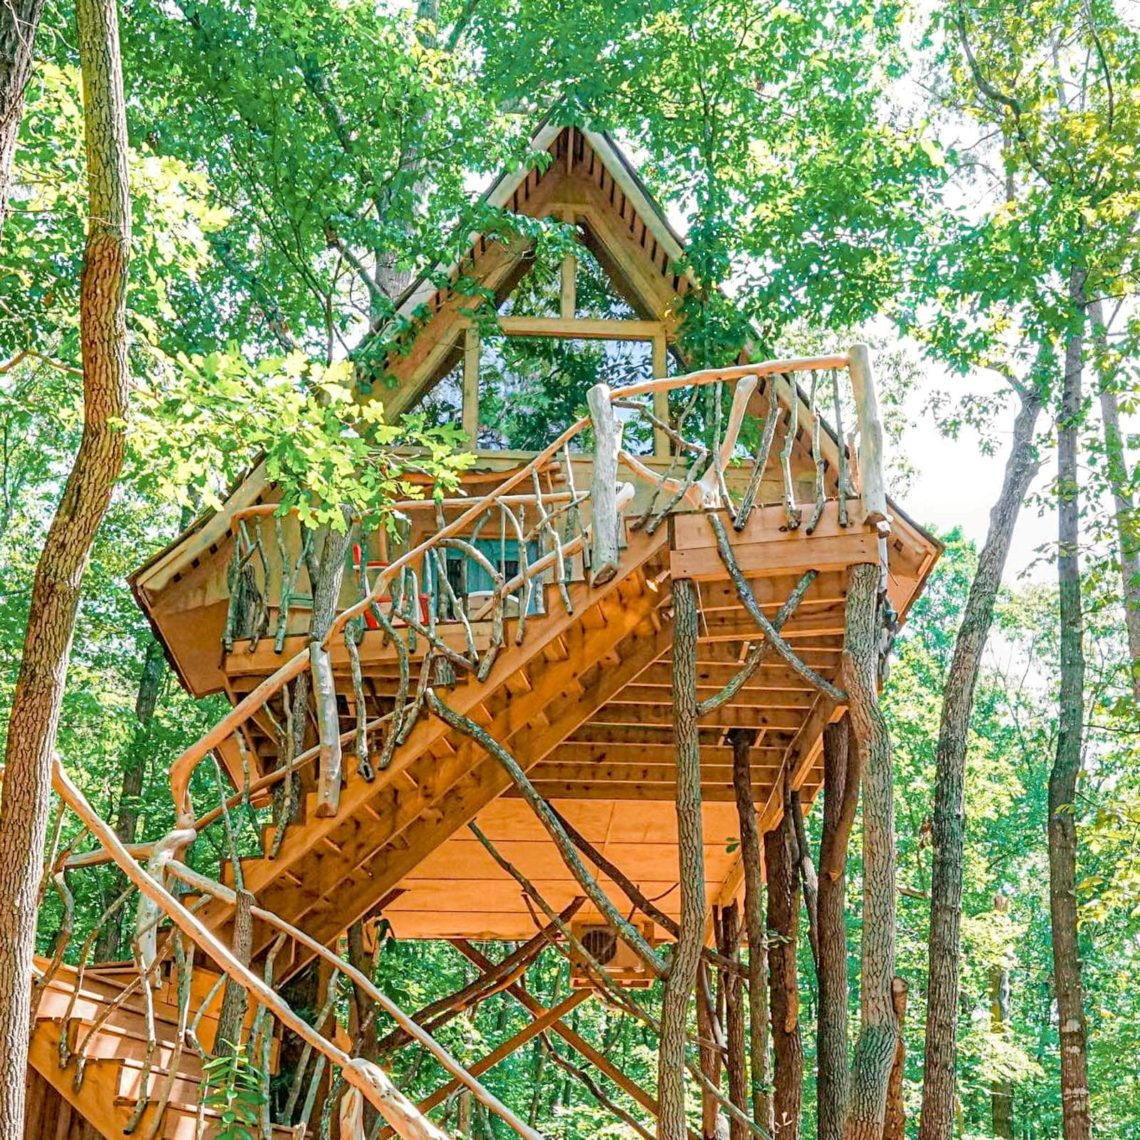 Learn about the best Georgia treehouse rentals, with locations in north Georgia, Atlanta, metro Atlanta, and Savannah! You can book a stay at any of these treehouses on Airbnb. | treehouse rentals in georgia mountains | treehouse rentals atlanta | georgia treehouse airbnb | treehouse rentals in suches | treehouse rentals in savannah | atlanta treehouse airbnb | tree houses for rent in georgia | treehouse rentals north georgia | atlanta treehouse | georgia getaways